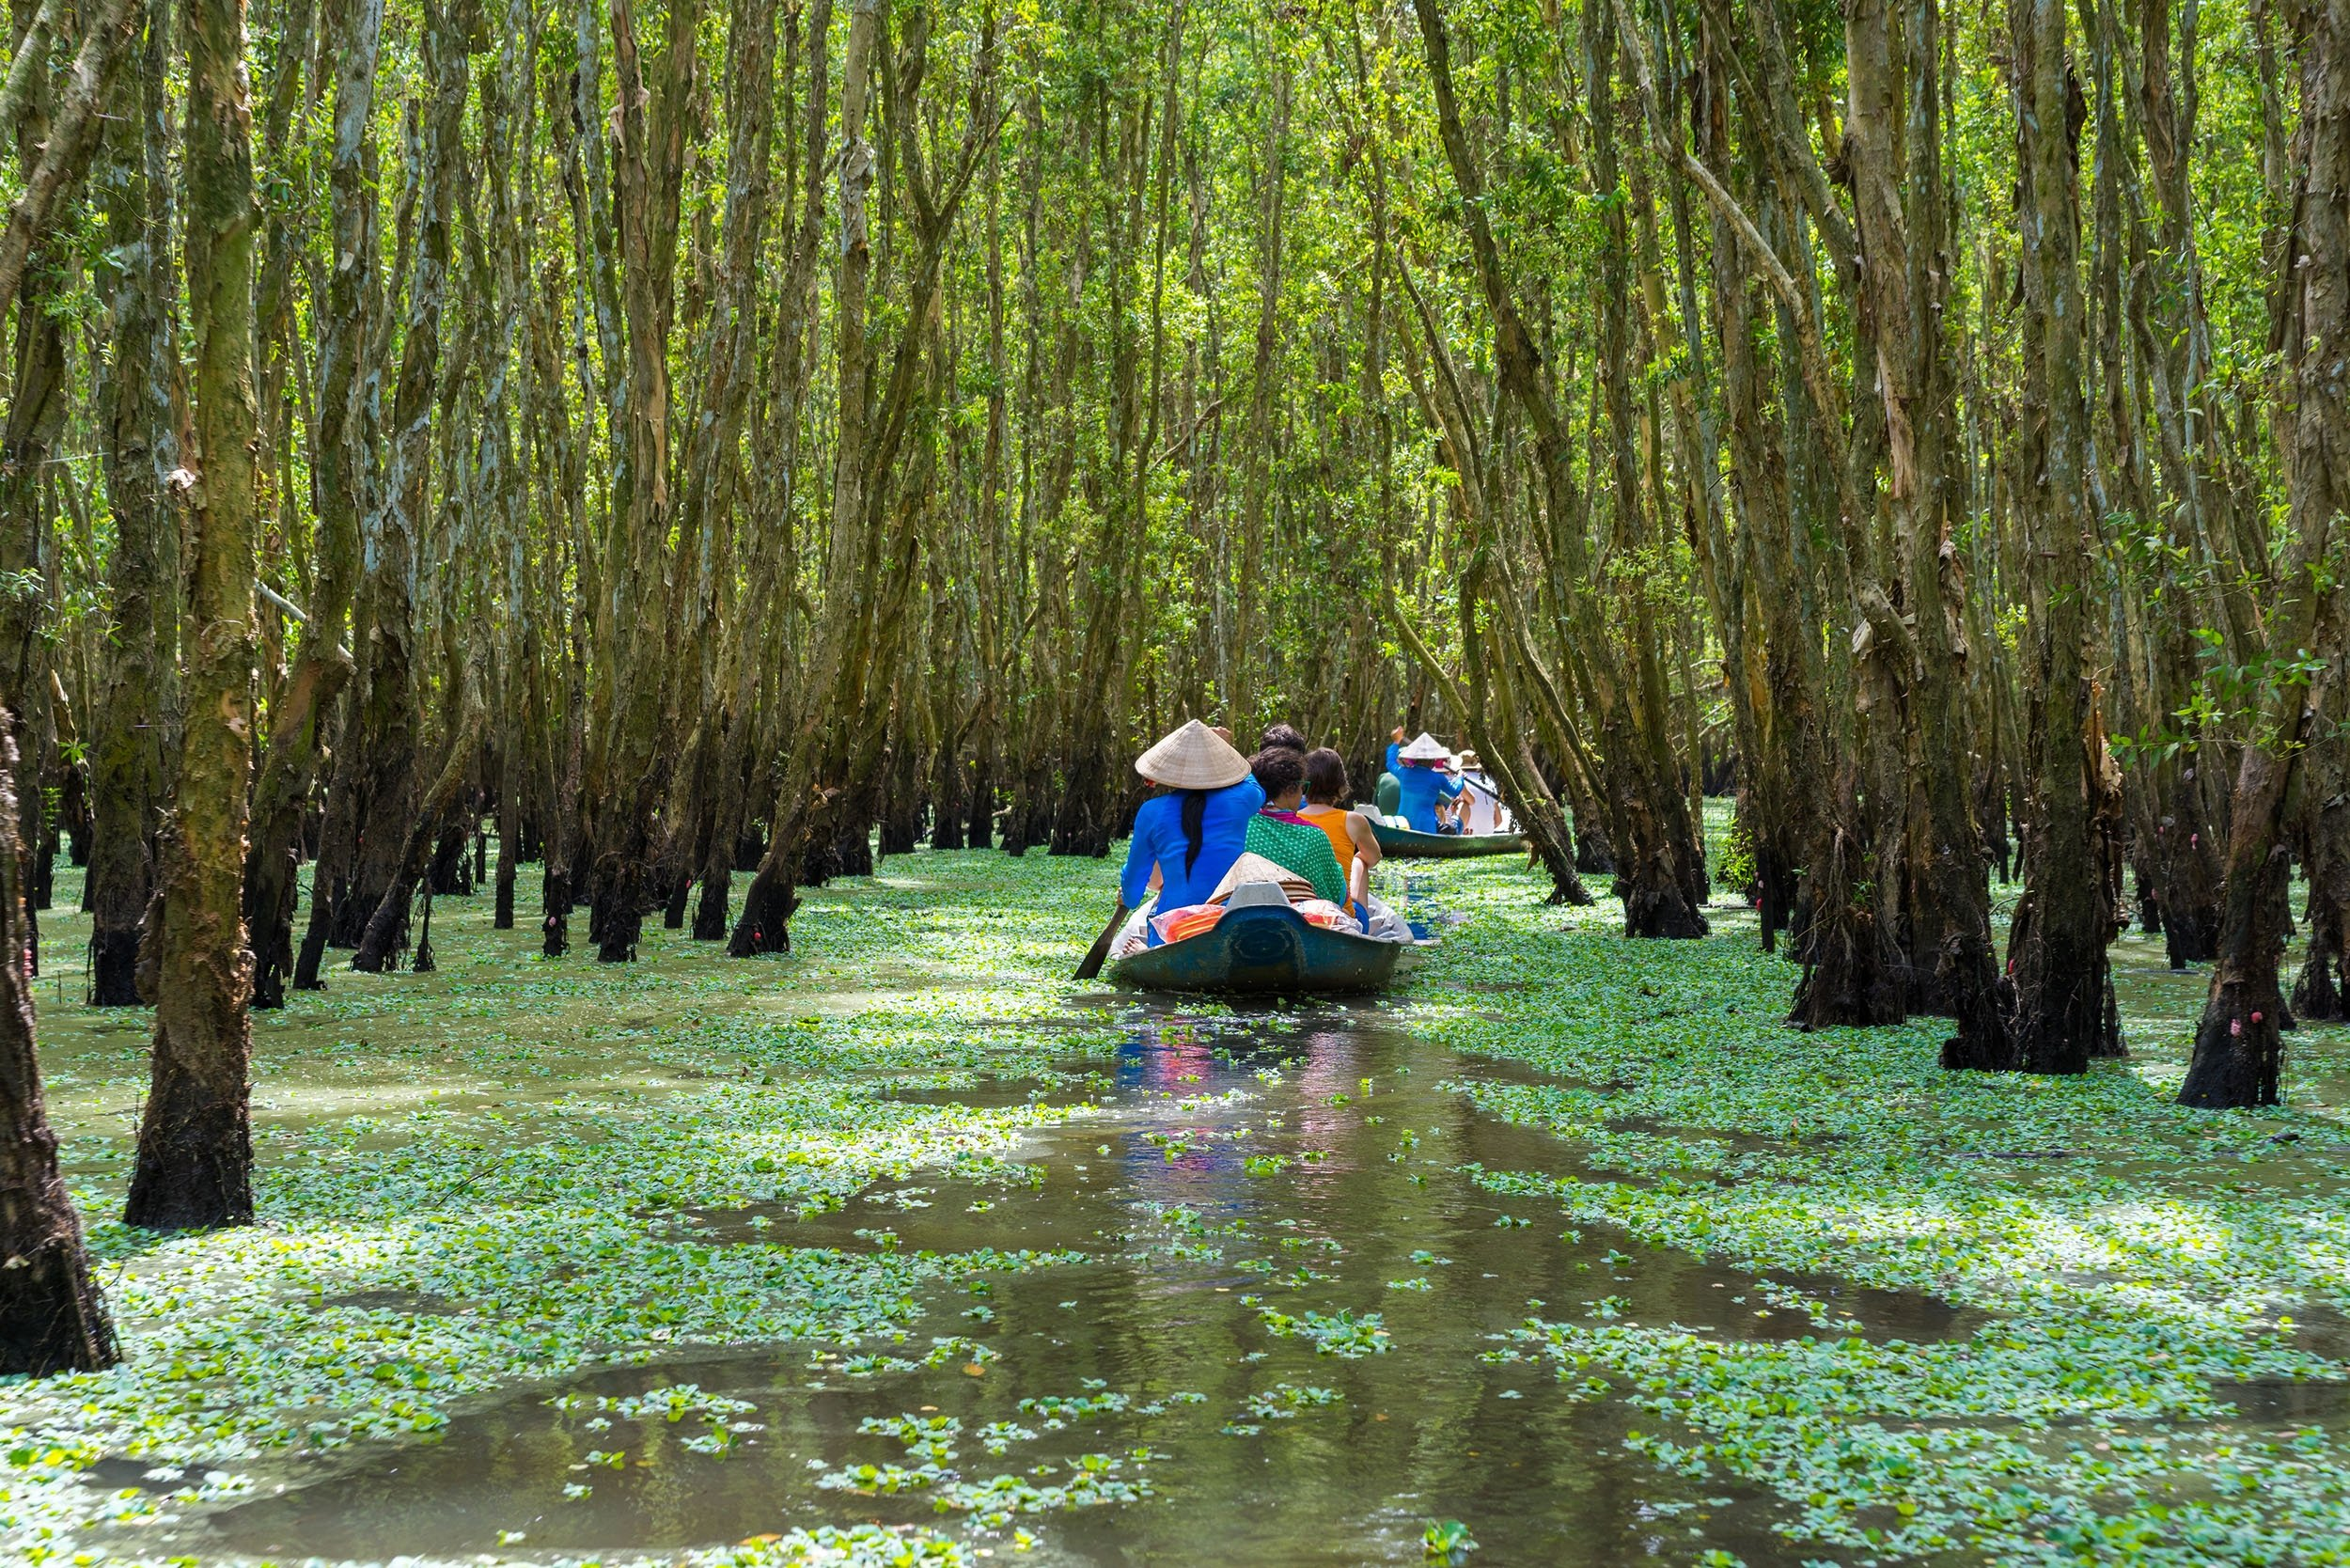 Locals row a small touristic boat among trees in the Mekong delta, Vietnam.(Shutterstock Photo)